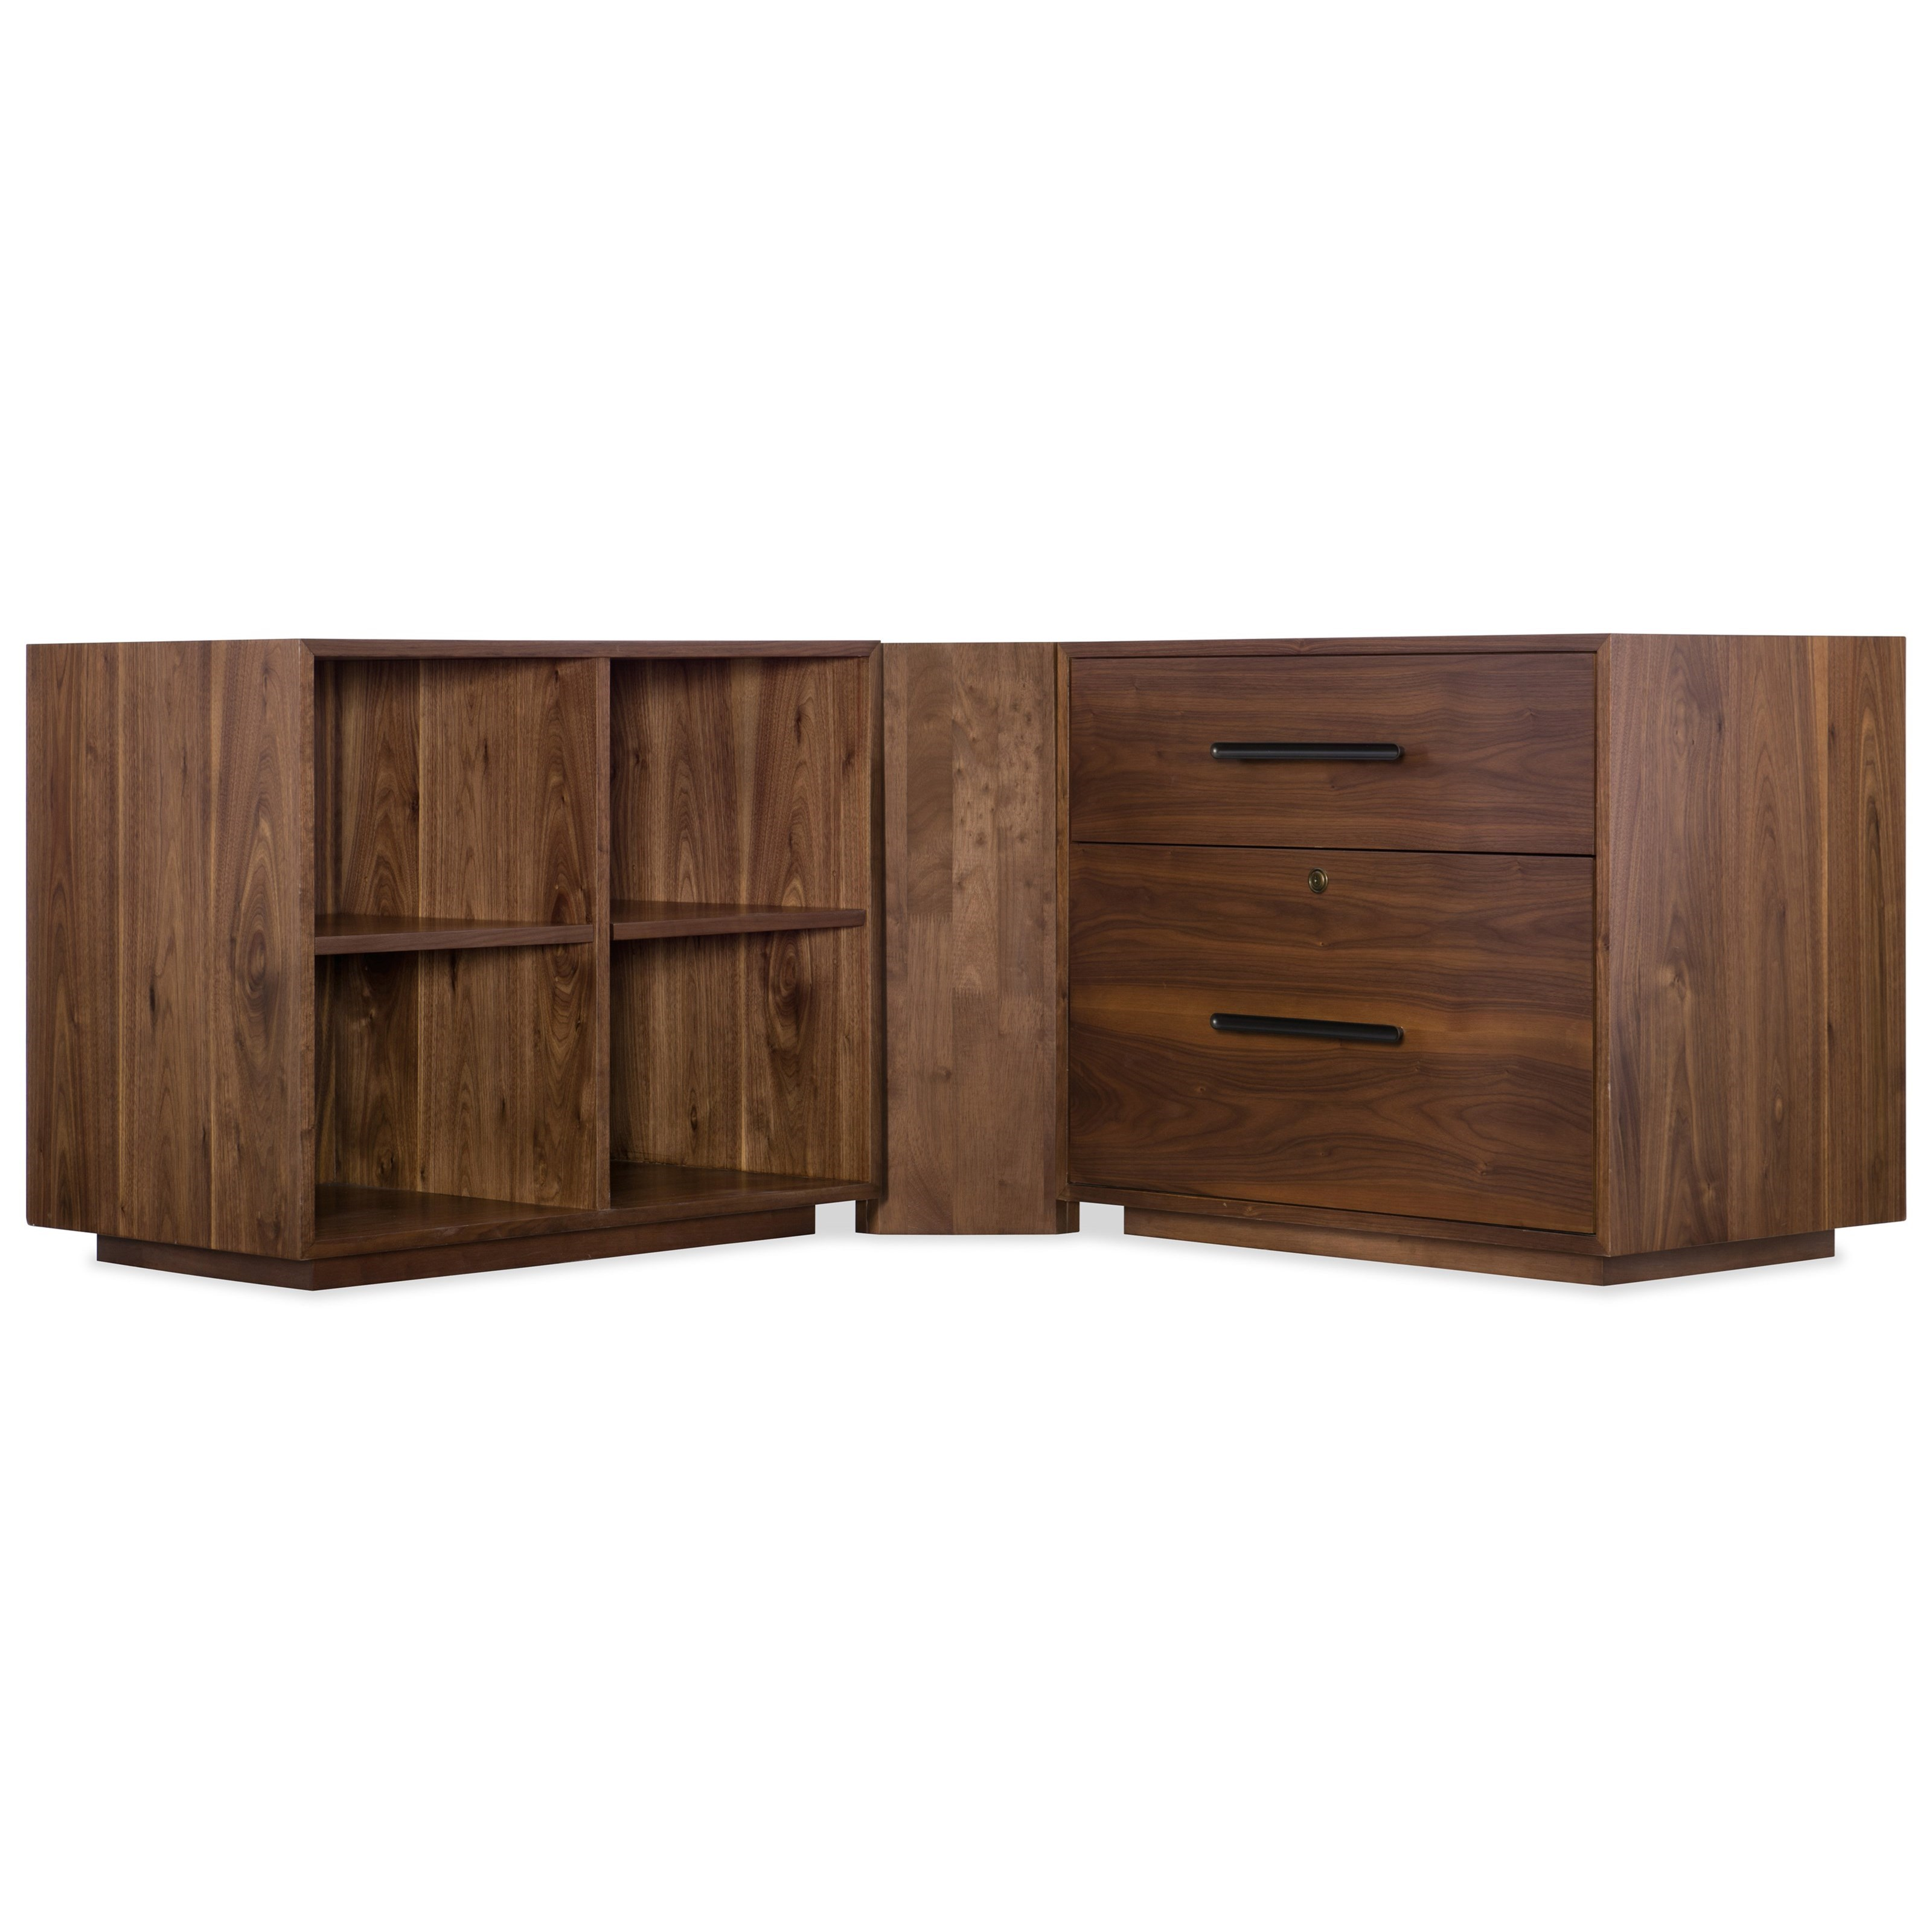 Elon Lateral File by Hooker Furniture at Malouf Furniture Co.